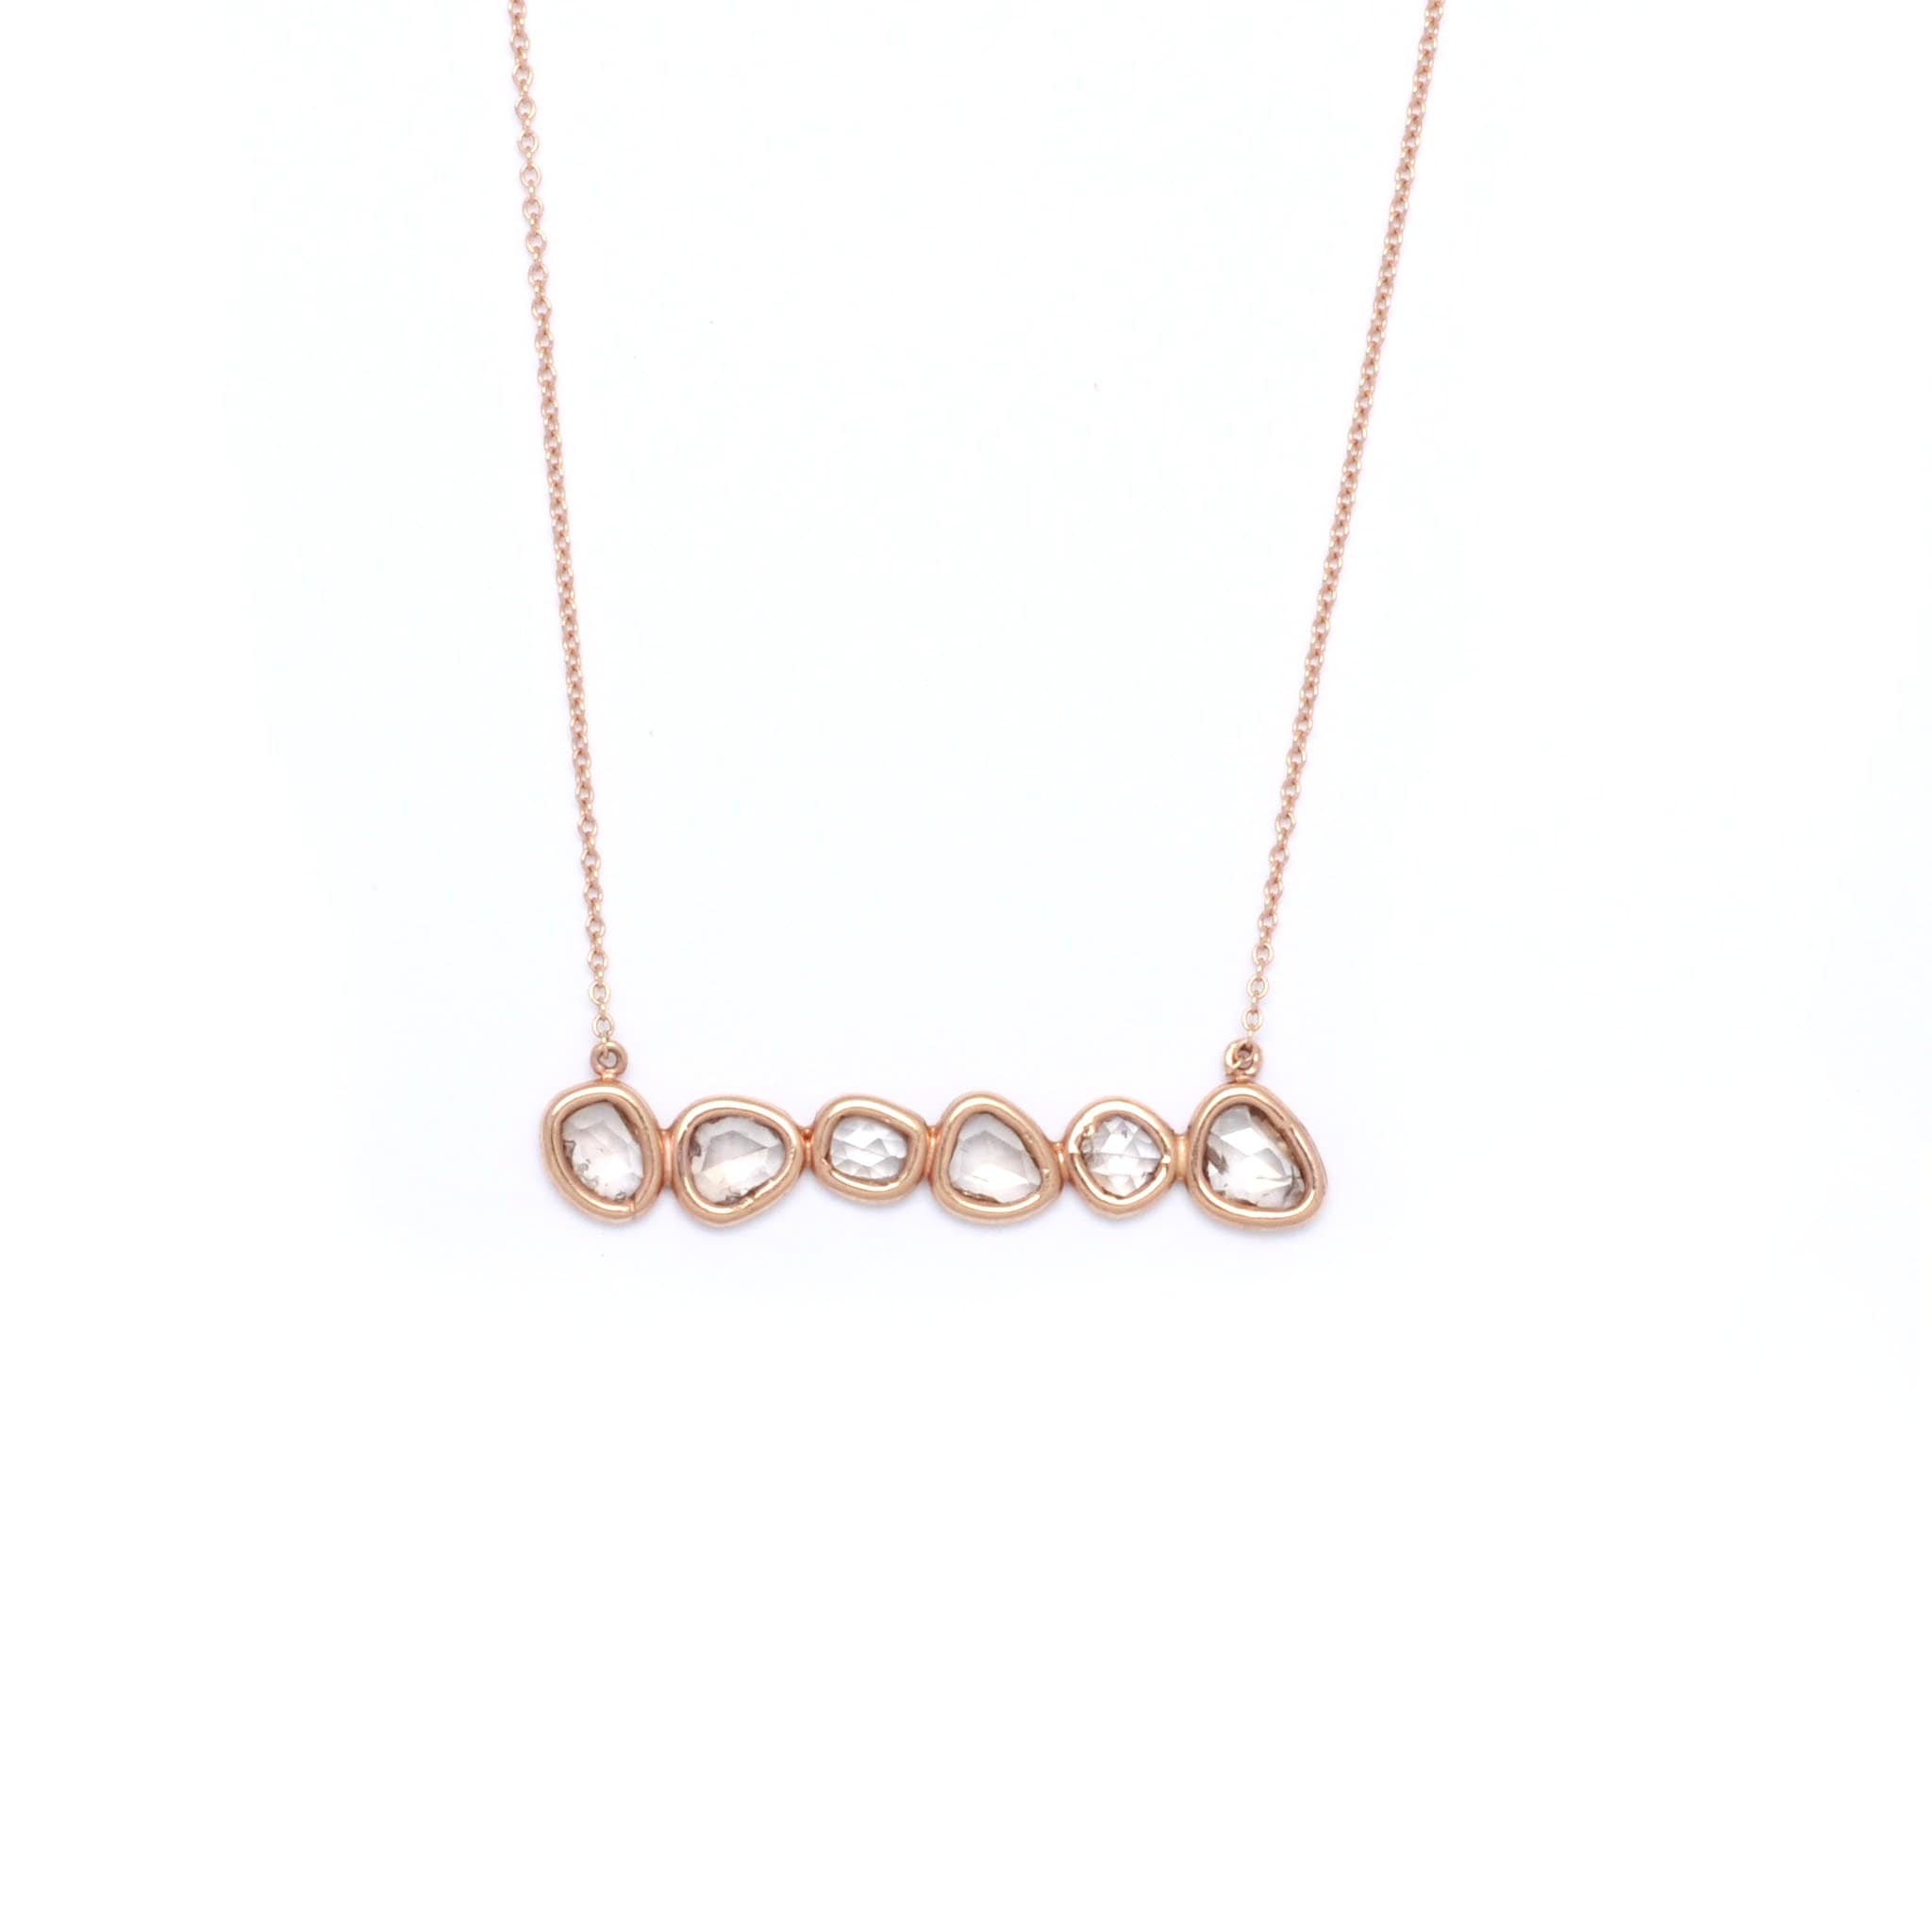 lucymint products mini filled original gold minimalist bar collections jewelry necklace delicate